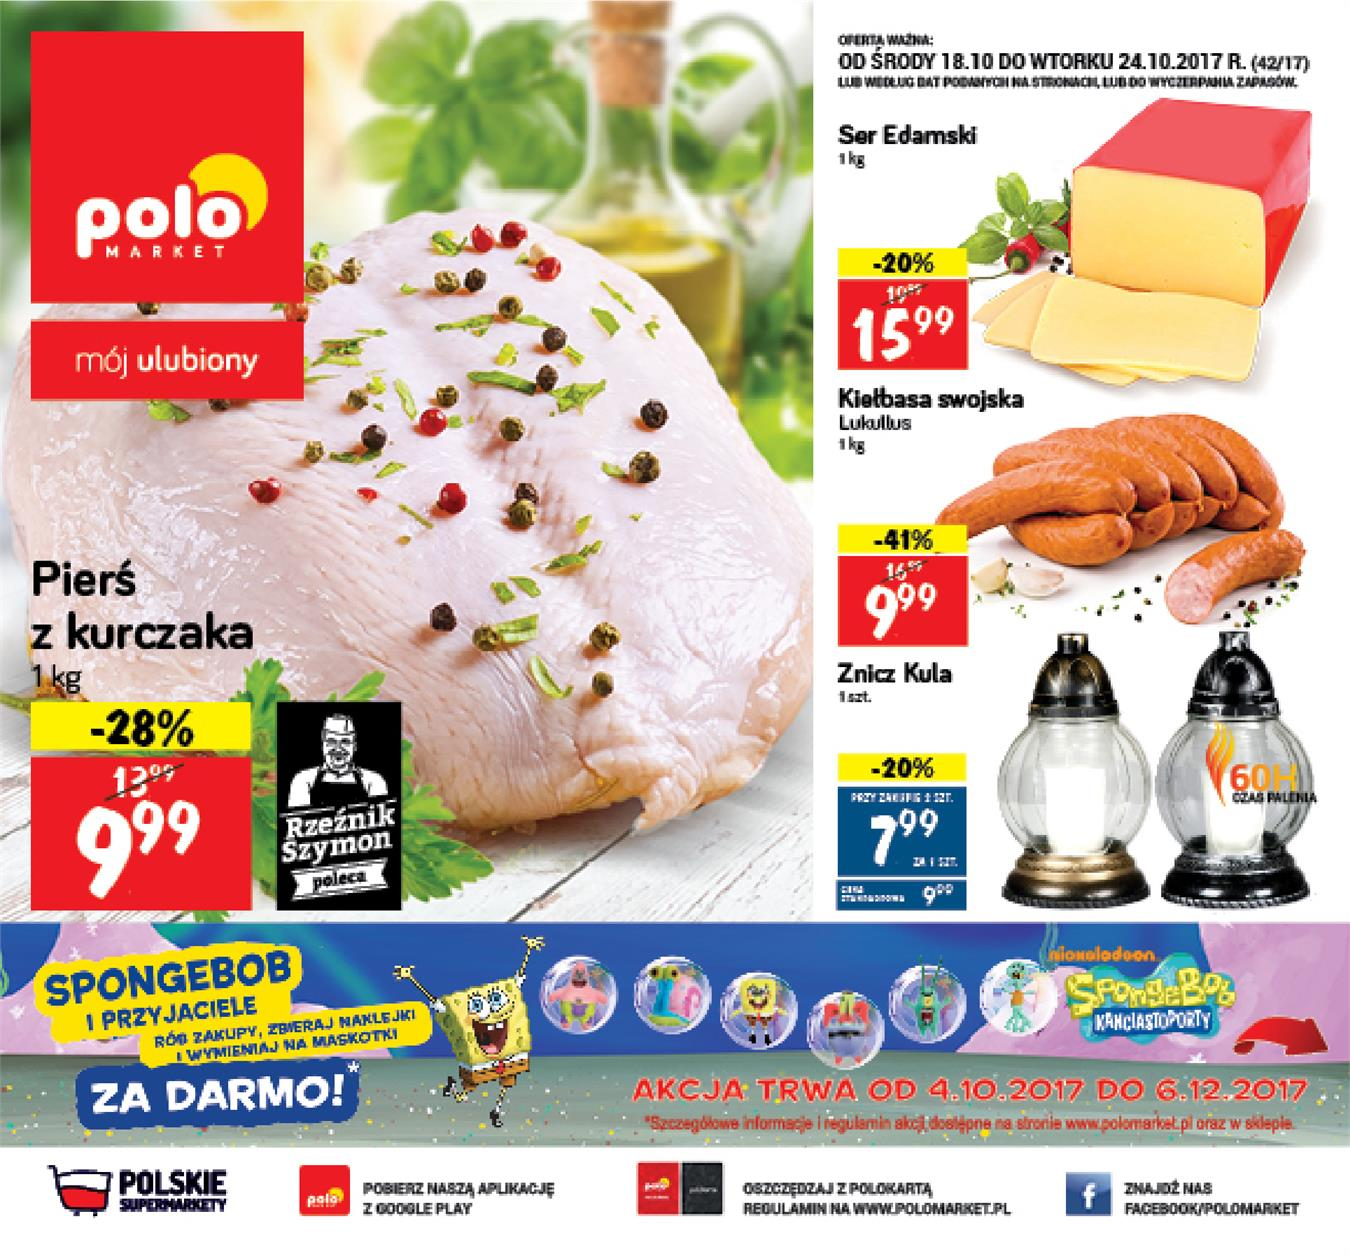 Gazetka Polomarket Sp. z o.o. nr 0 od 2017-10-18 do 2017-10-24